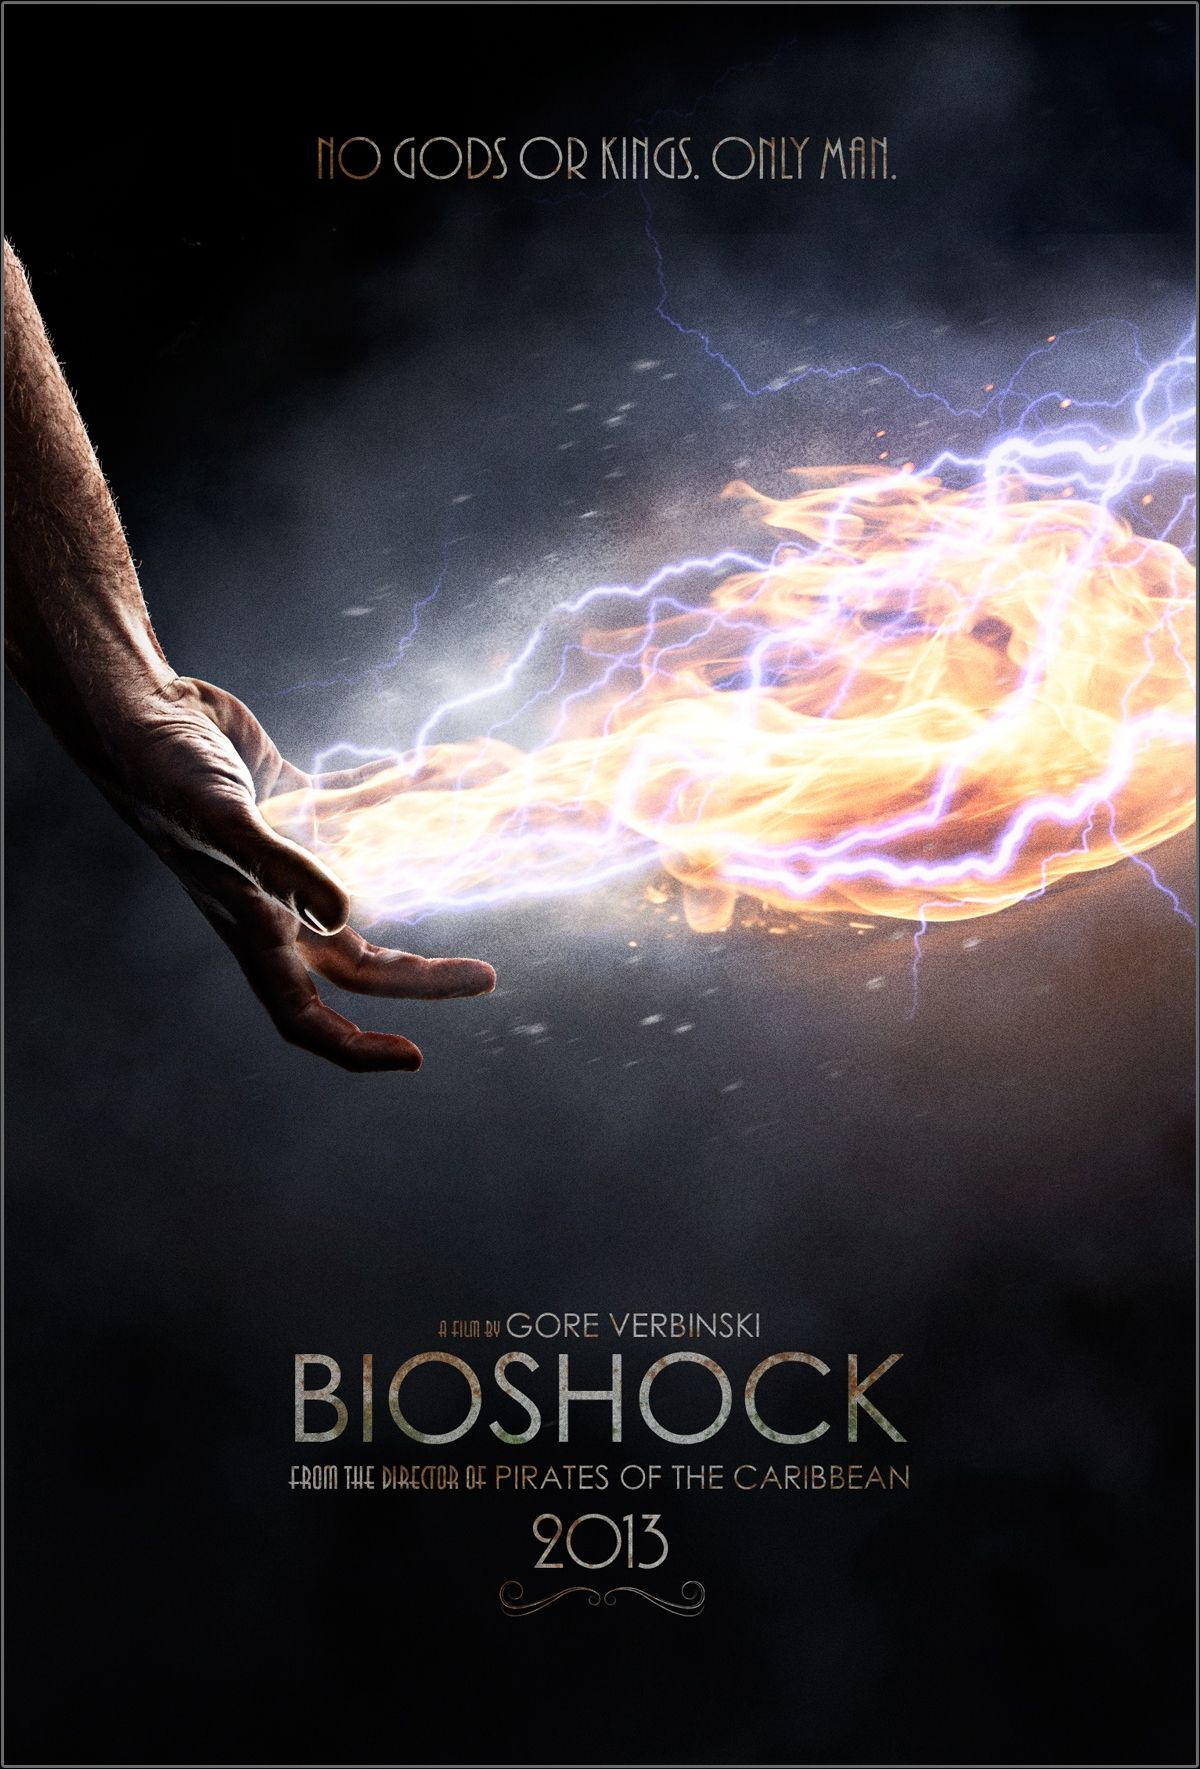 BIOSHOCK - These Fan Made Movie Posters Bring You to Rapture - News - GameTyrant